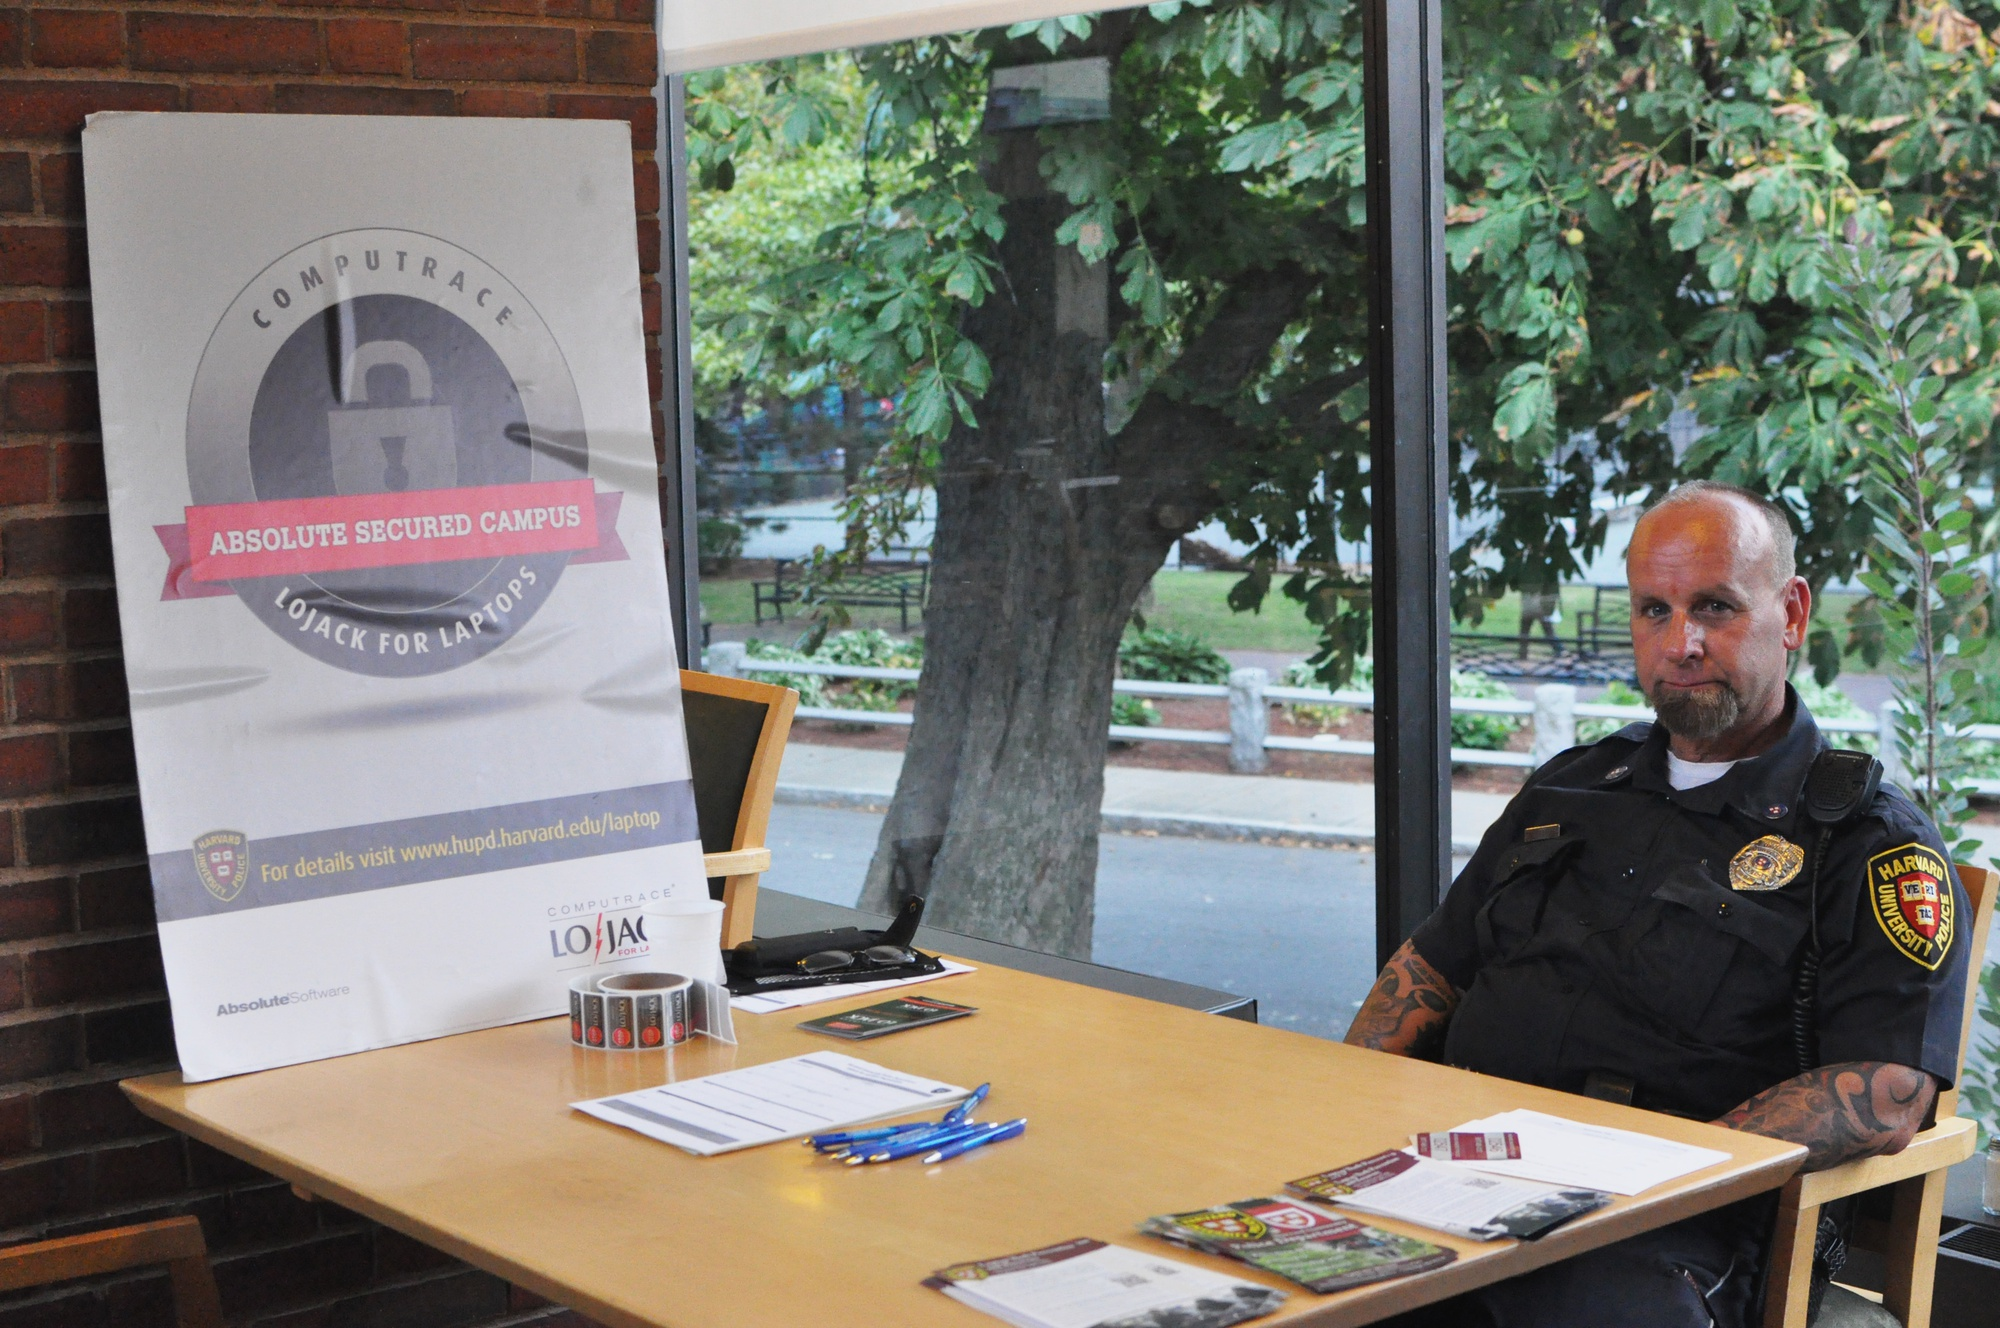 Officer Wayne F. Gabaree awaits for students in need of registration for their laptops in Mather dining hall Thursday afternoon.